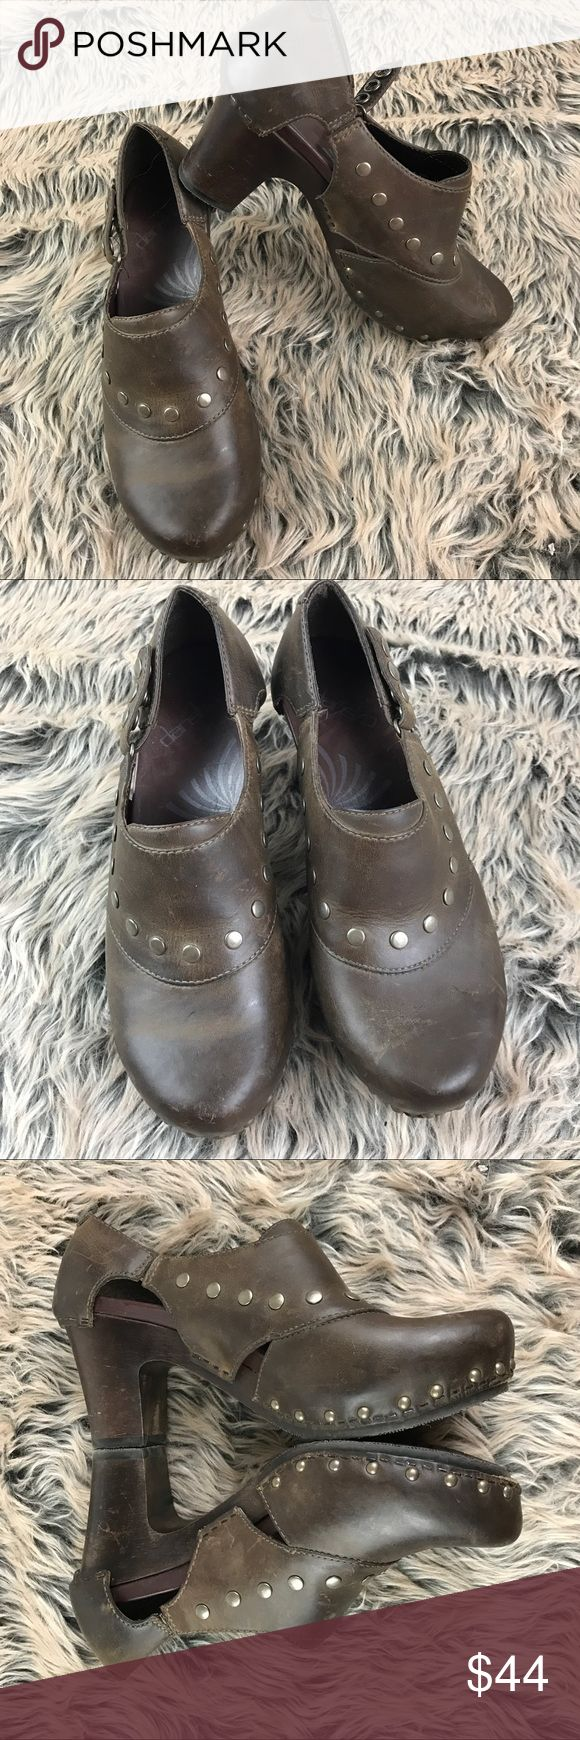 DANSKO Ryder Heeled Clogs Brown Leather Studded DANSKO 'Ryder' Heeled Clogs Brown Oiled Leather Studded US 7.5 8 EU 38 Women's   Beautiful shoes. Gently worn. Minor scuffs from wear. Tagged EU 38 which is the equivalent to a 7.5-8 US per Danskos website. Dansko Shoes Mules & Clogs